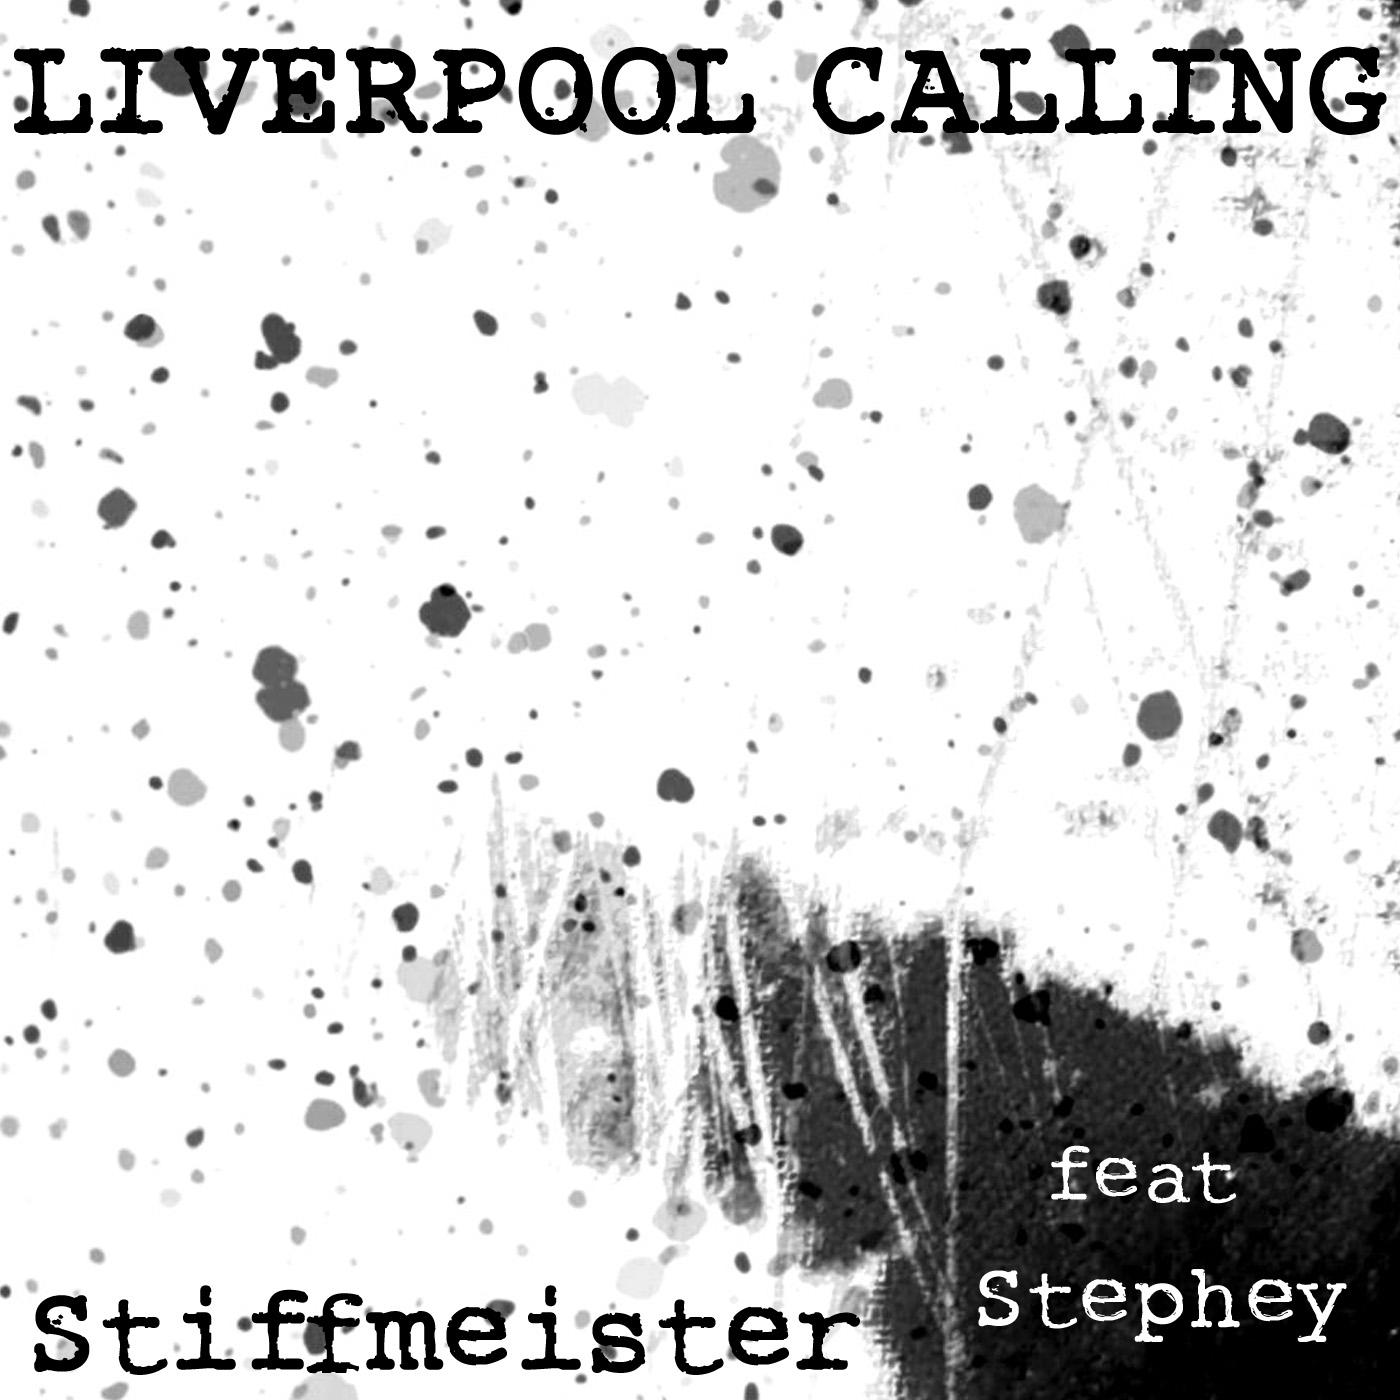 Liverpool calling